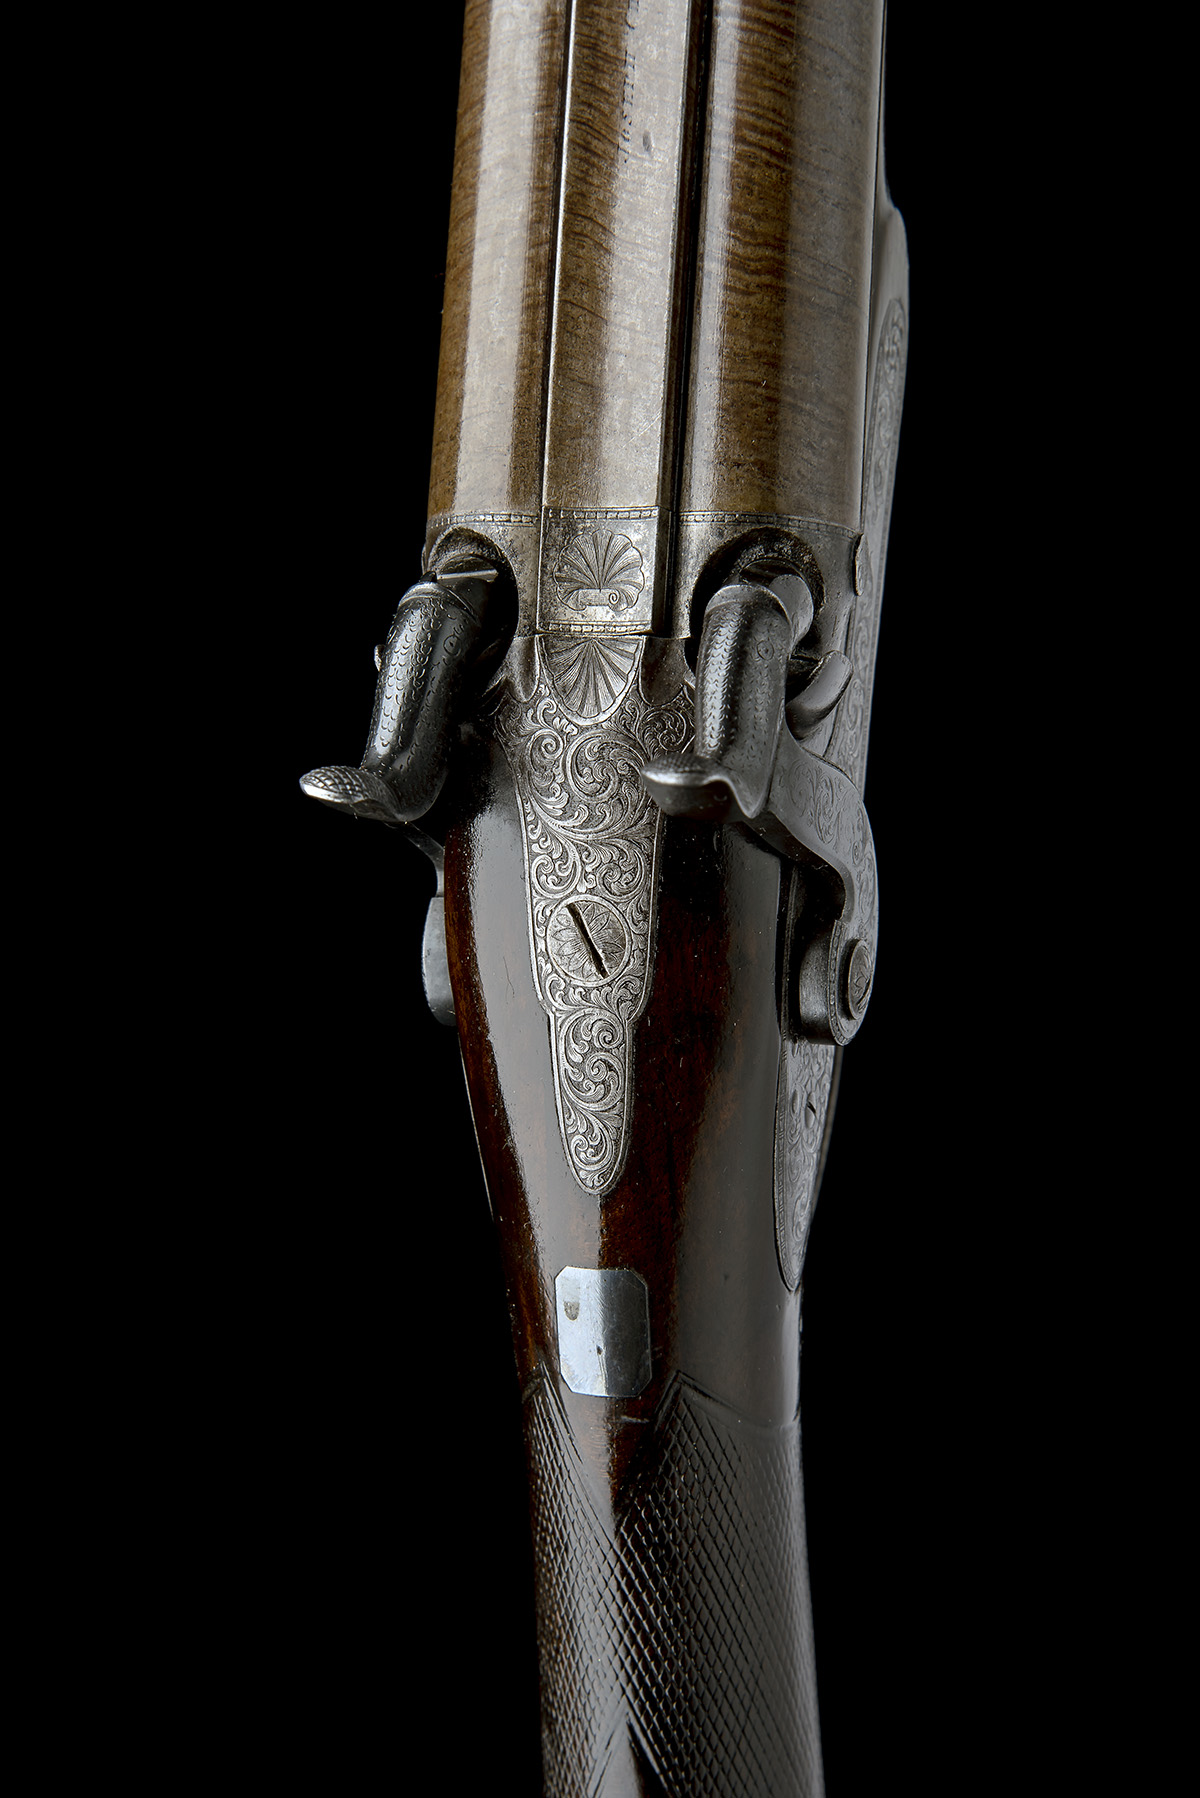 J.C. REILLY, LONDON A GOOD 12-BORE PERCUSSION DOUBLE-BARRELLED SPORTING-GUN, serial no 5580, for - Image 4 of 11